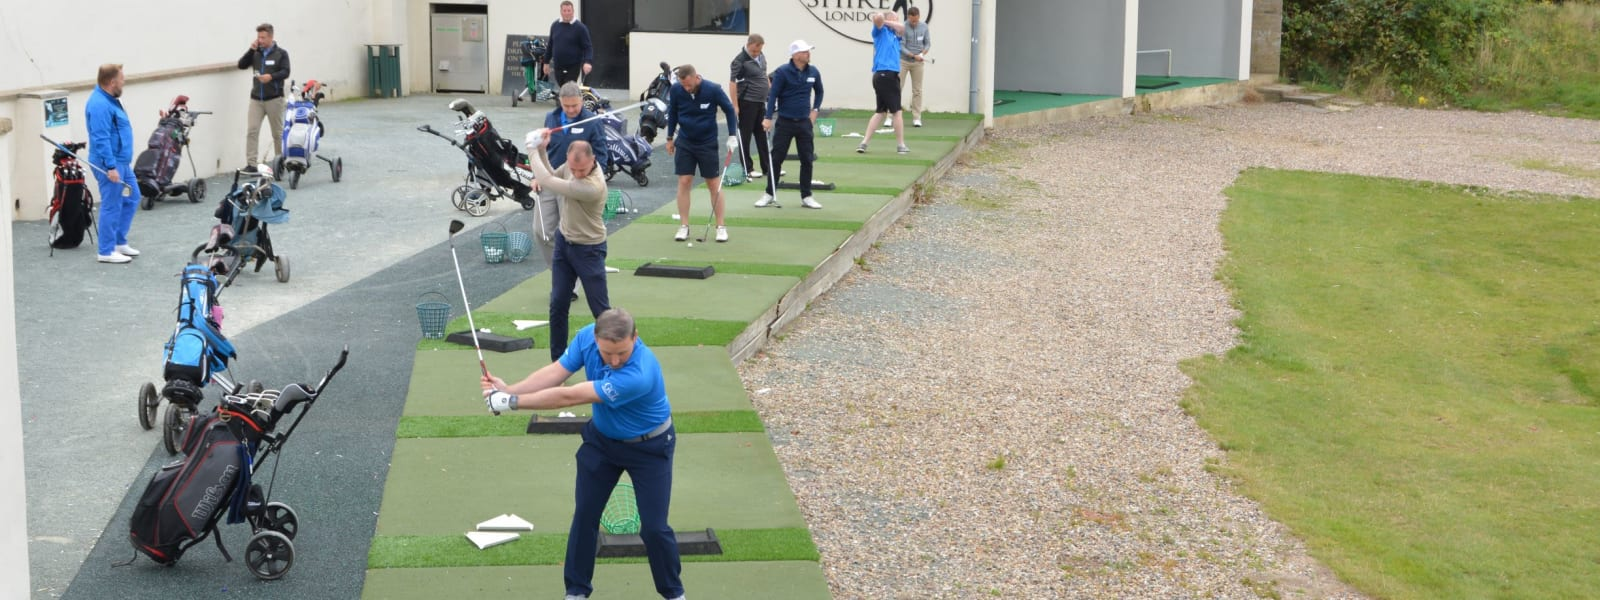 GCL Hosts Charity Golf Day FOR Haemochromatosis UK